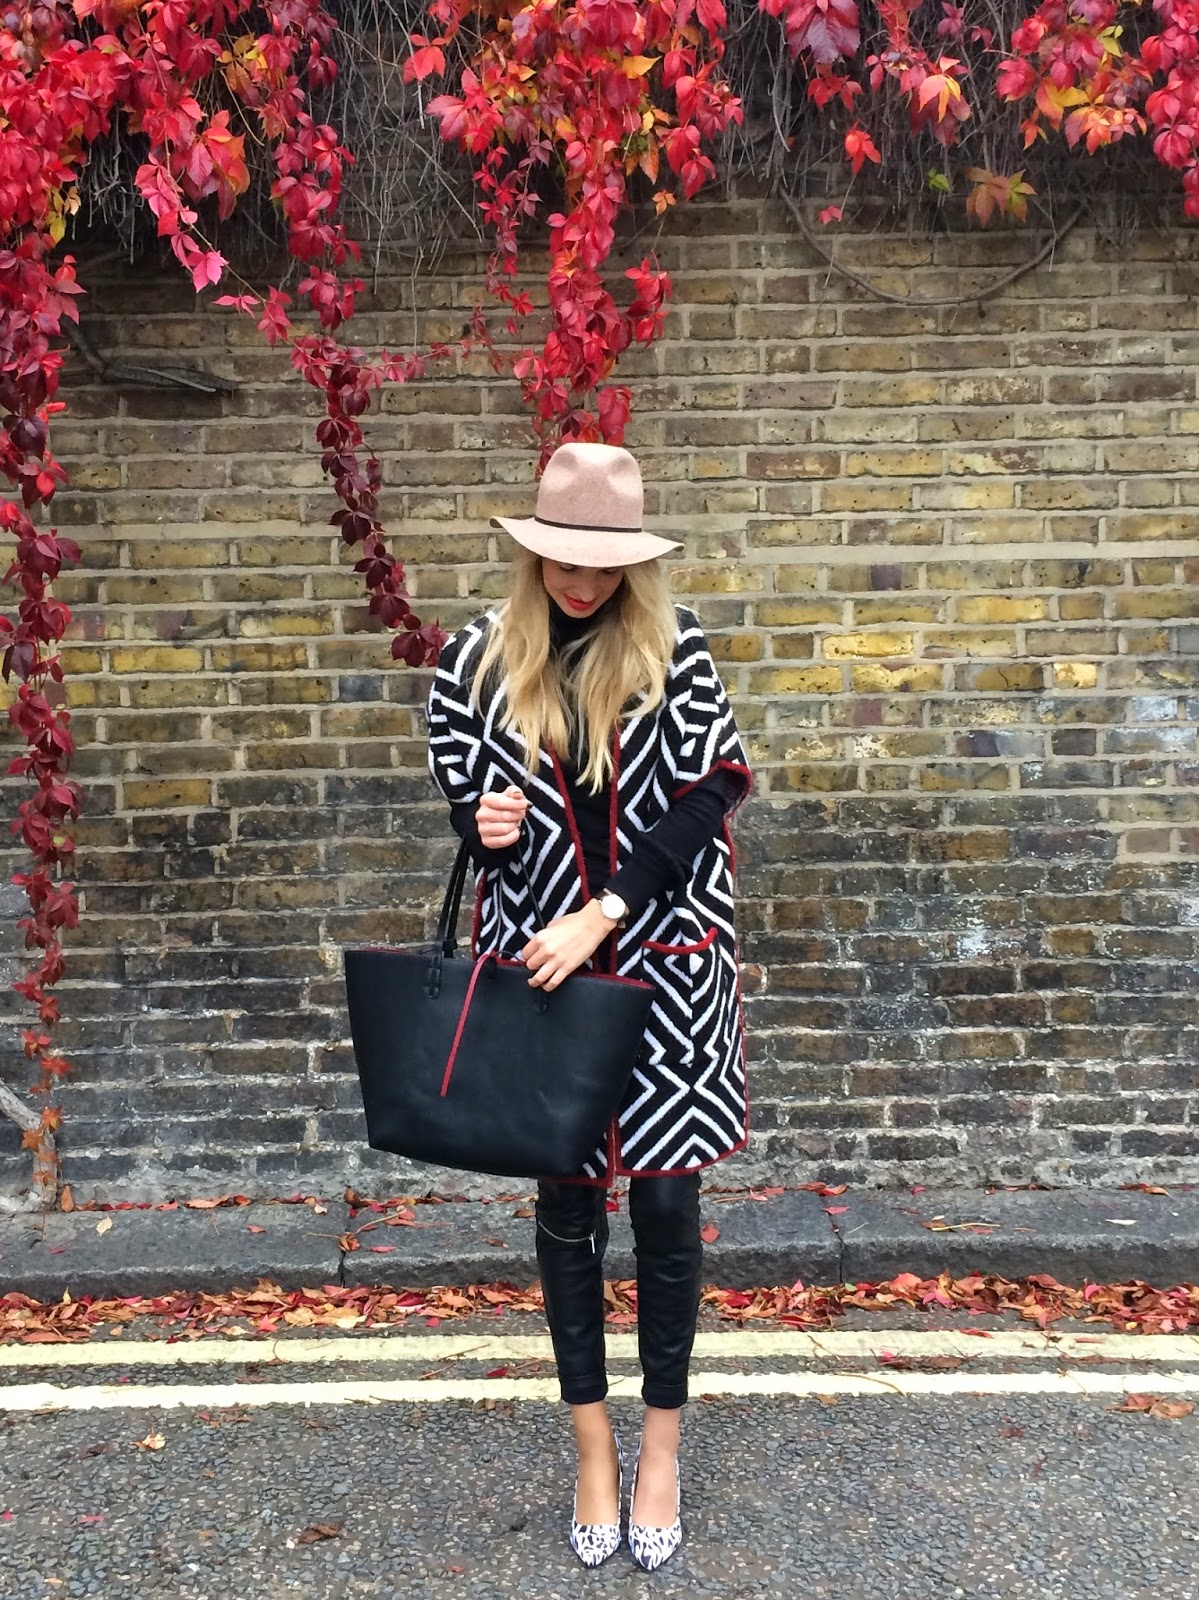 topshop hat, topshop fedora hat, camel coloured fedora hat, poncho , zara poncho, autumn look, mansur gavriel style bag, tote bag, black tote bag, leather biker pants, asos heels